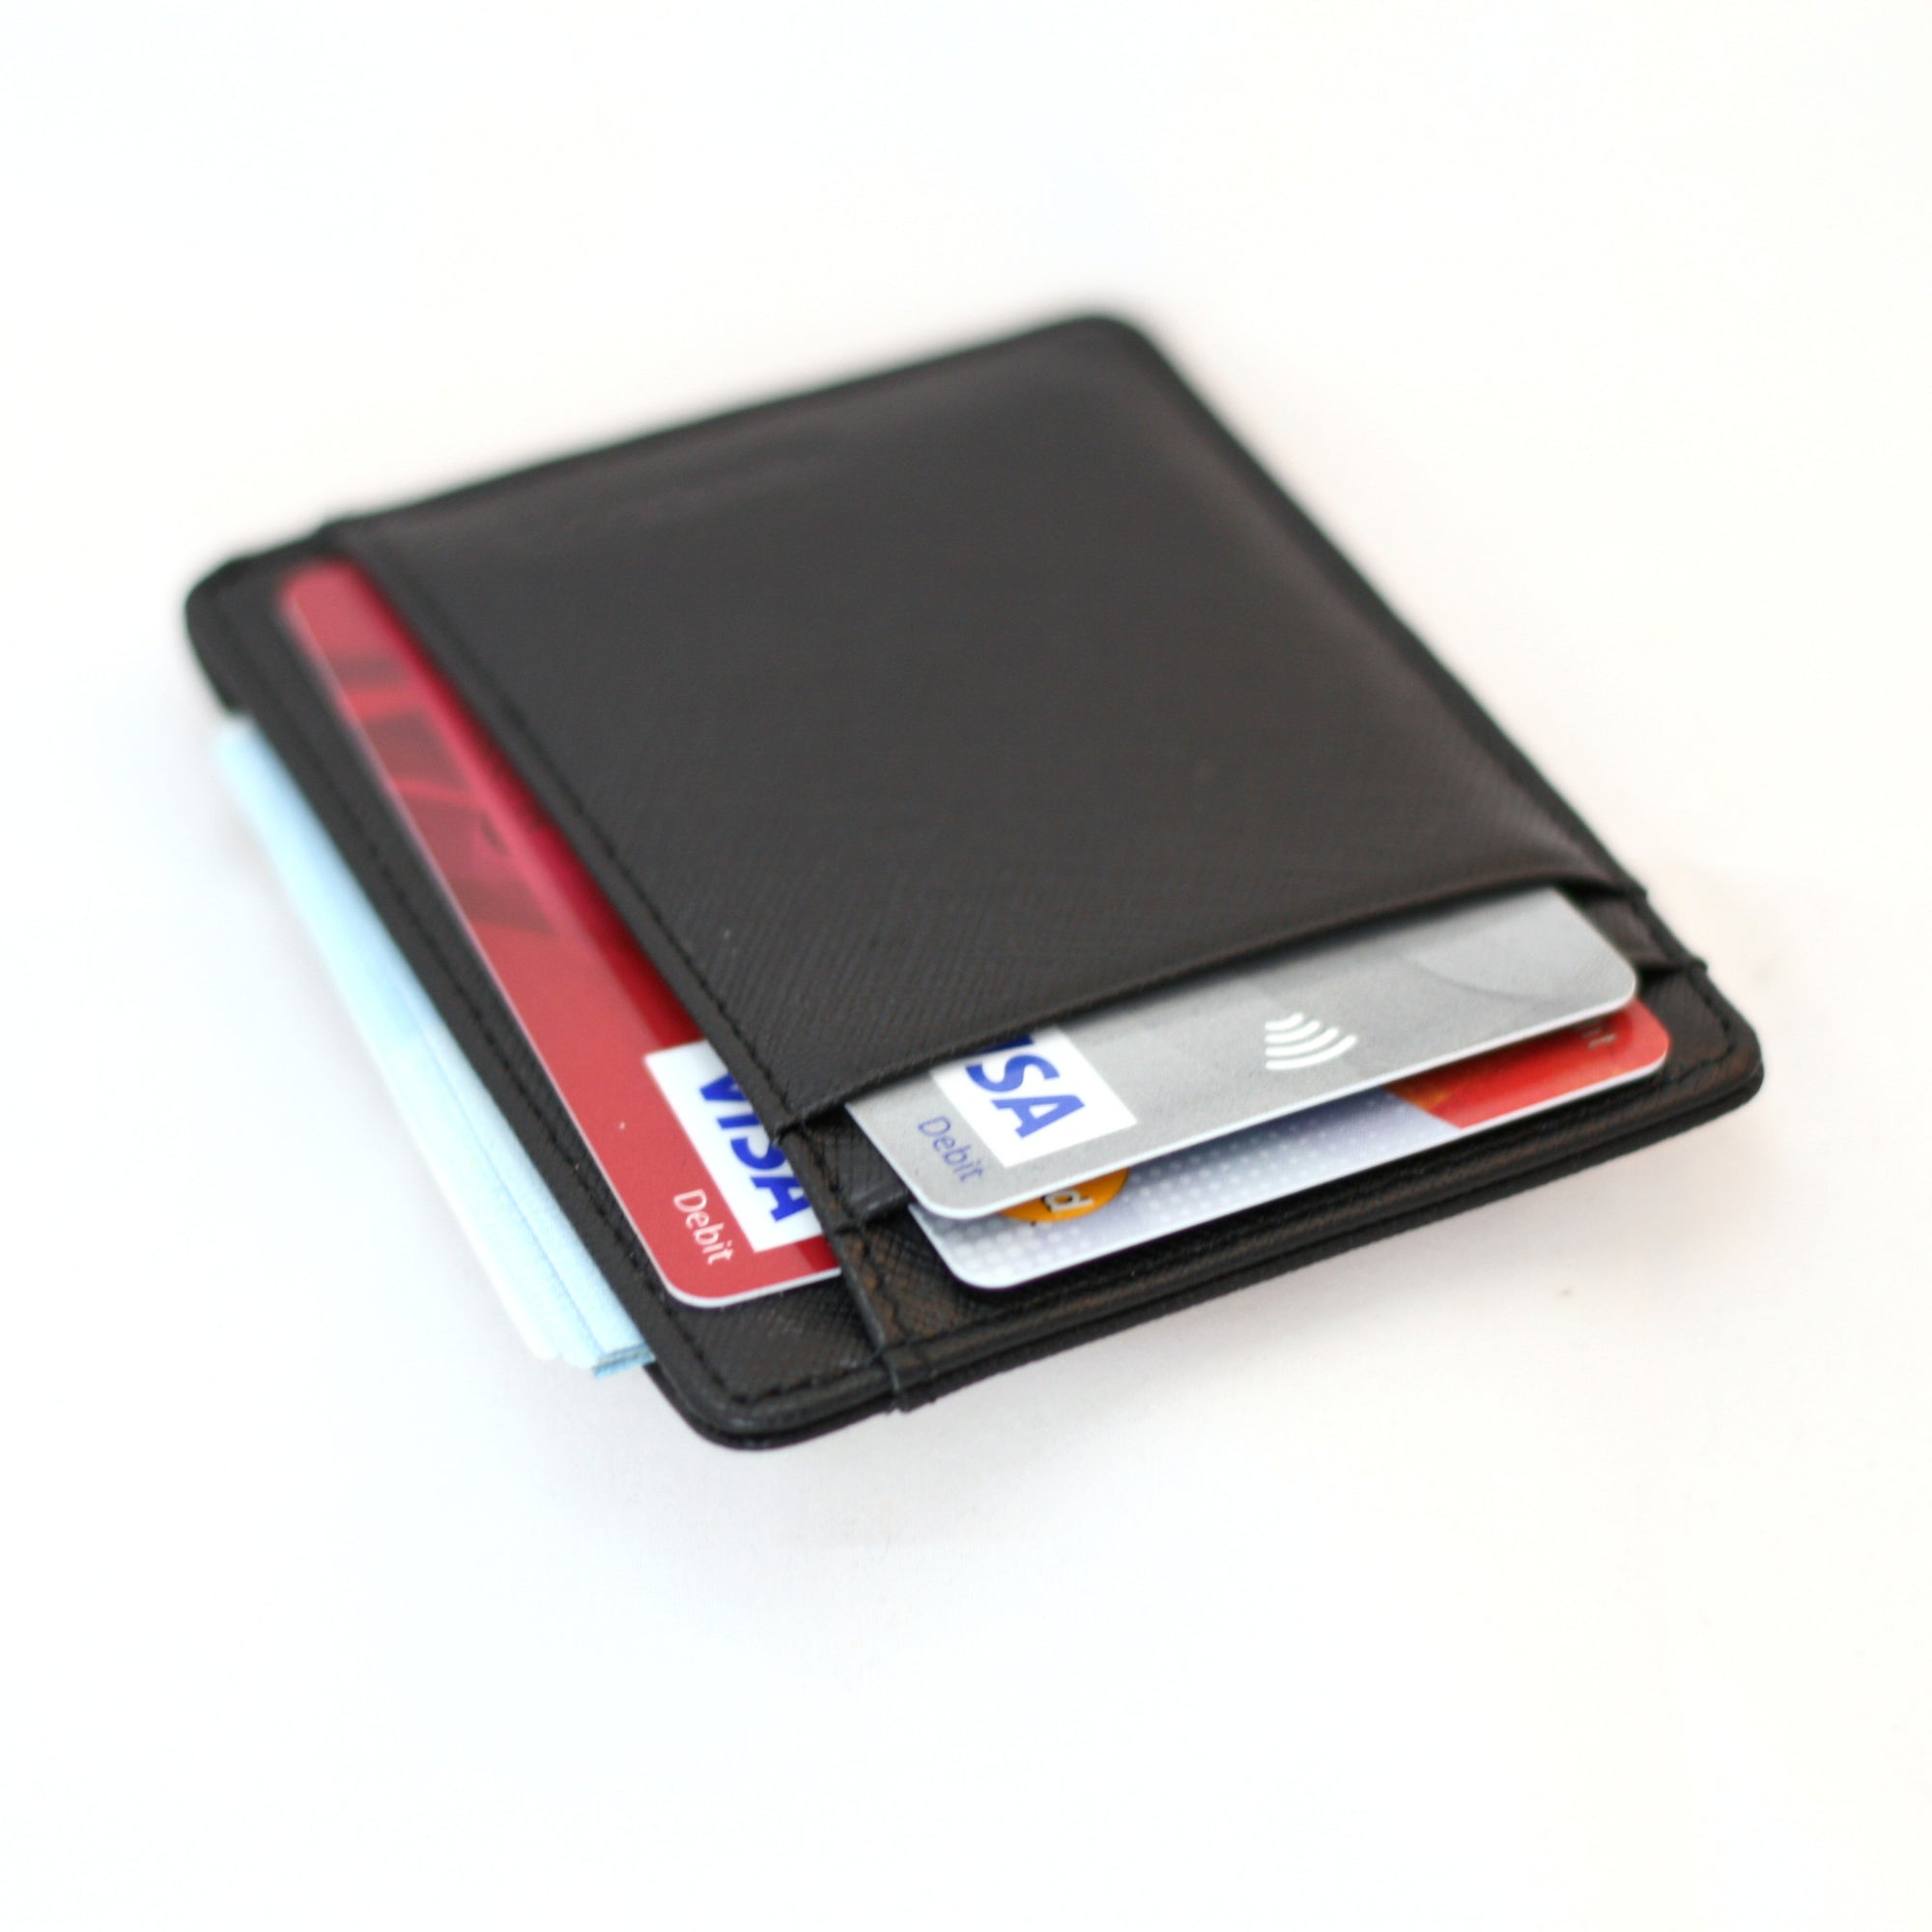 Slim Wallet - Card Holder - Wallet - MANOOCO - Wallet - MANOOCO